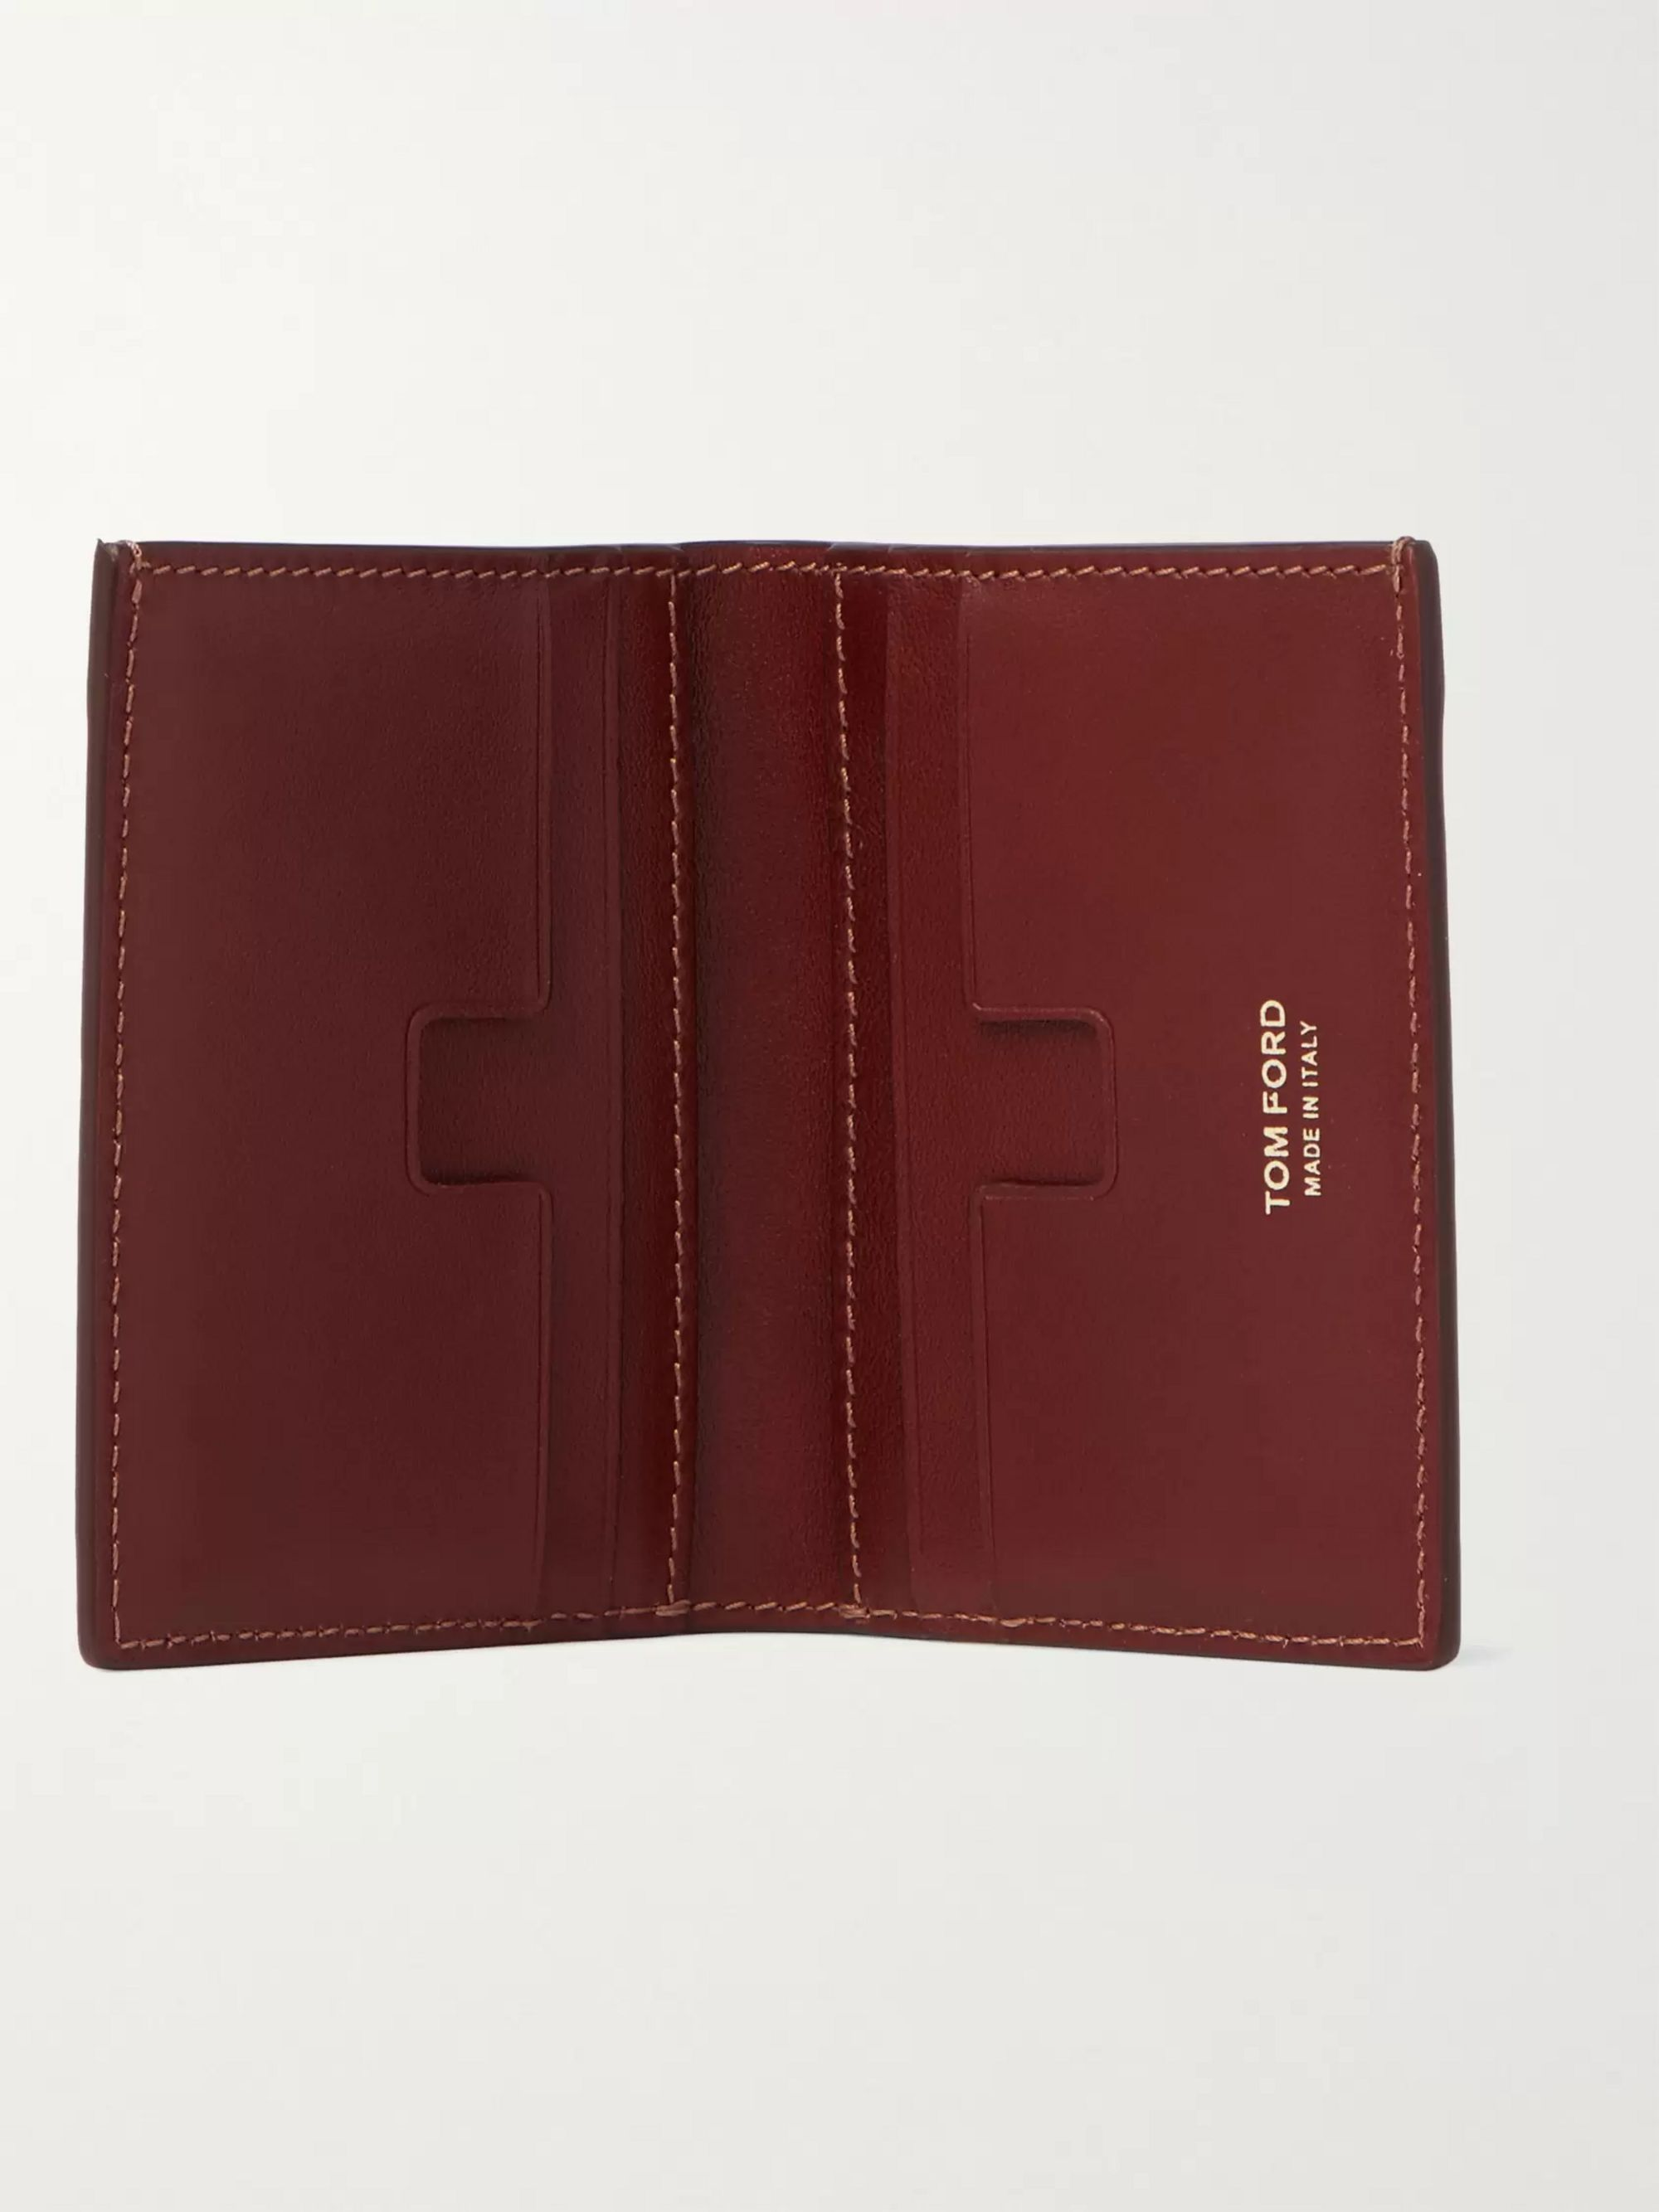 TOM FORD Leather Bilfold Cardholder